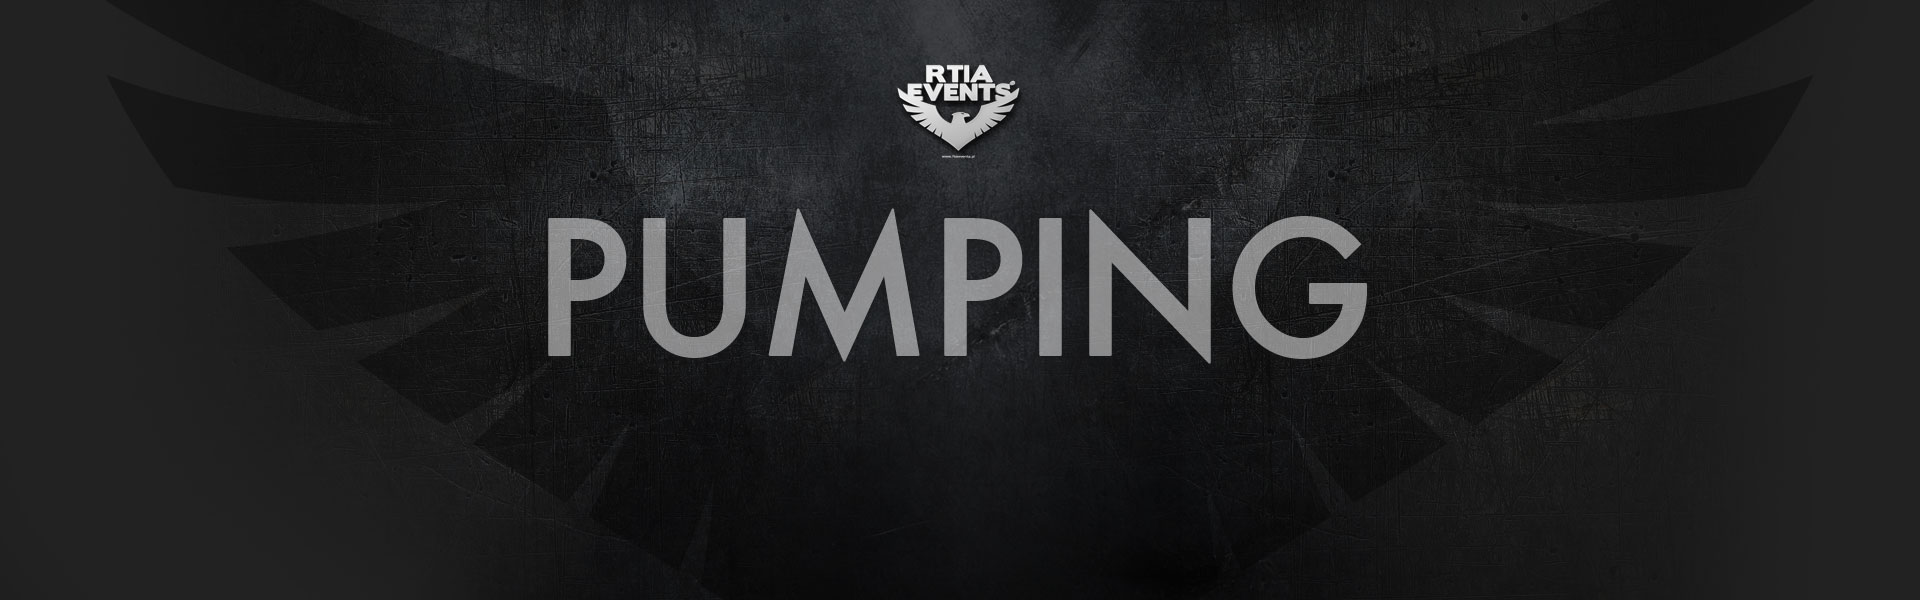 http://www.rtiaevents.pl/genres/pumping-house.jpg